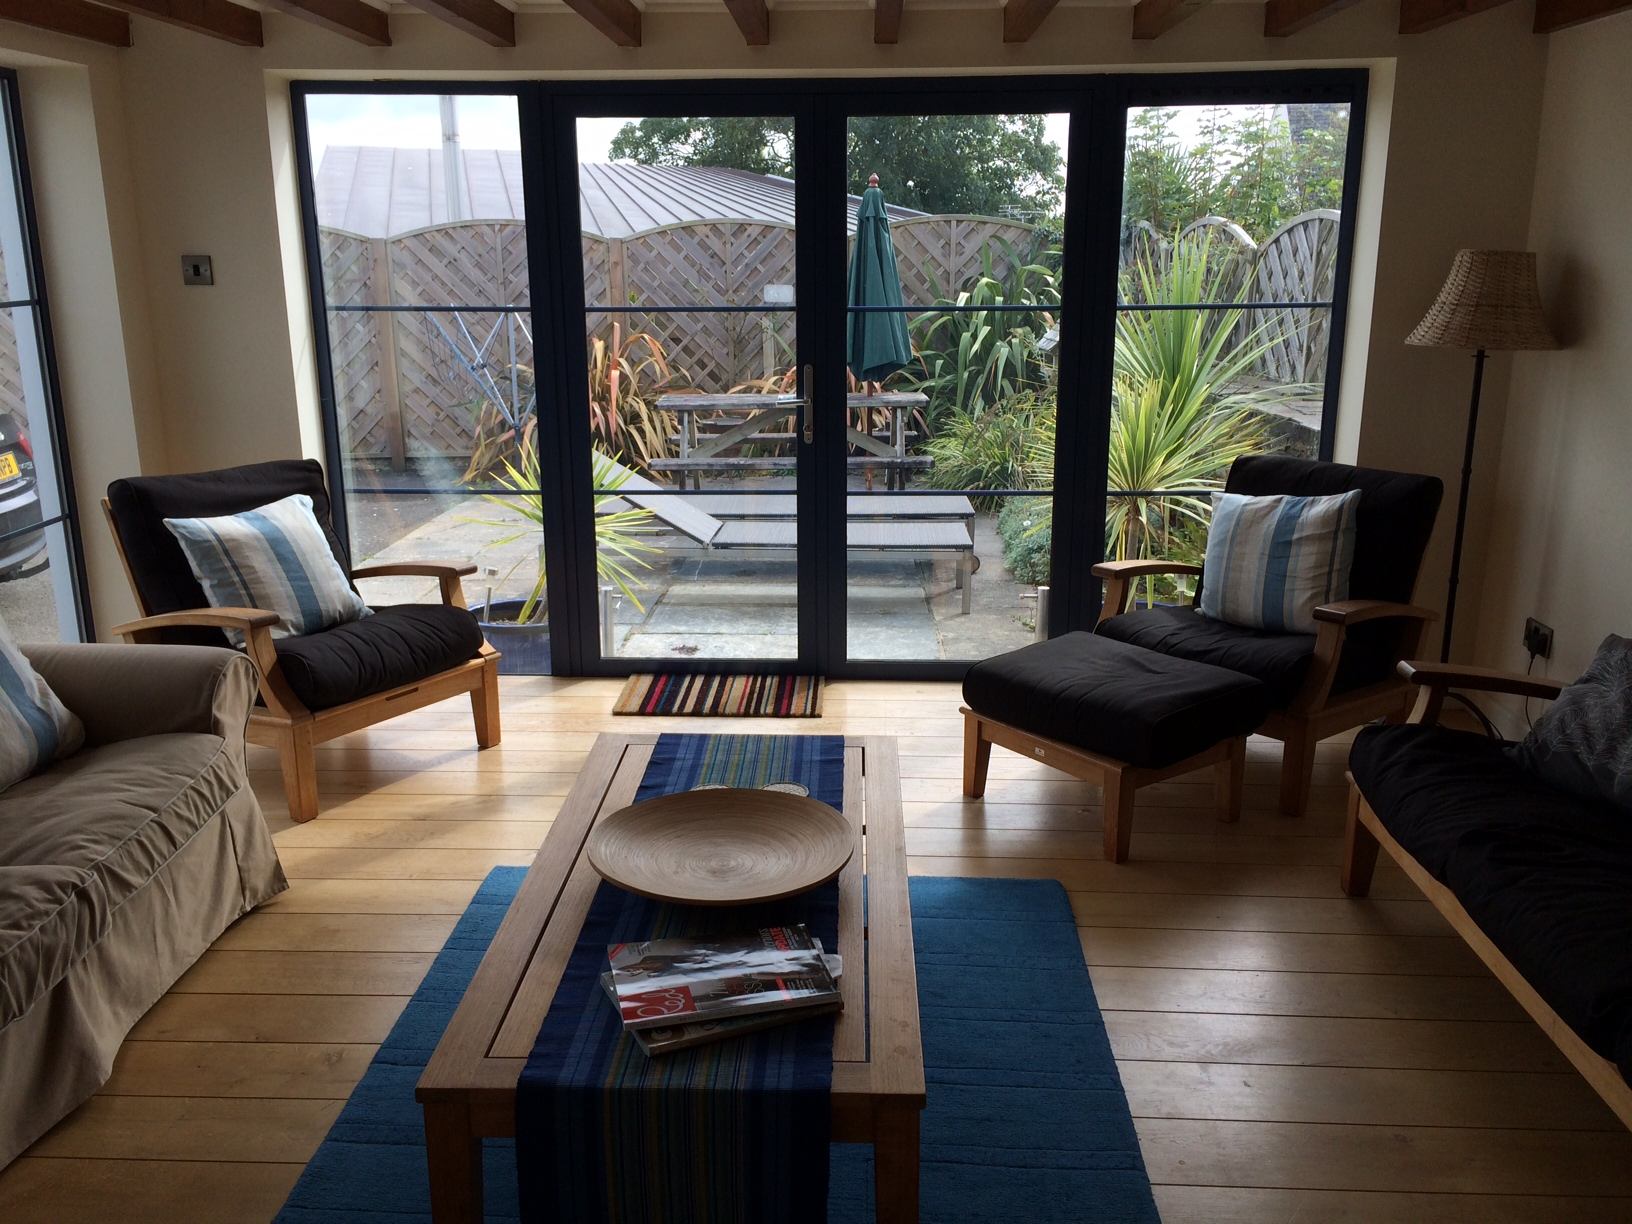 The Large Sunroom Has Lots Of Seating, Under Floor Heating, TV And Large  French Doors Leading To The Safe Enclosed Garden With Garden Furniture, ...